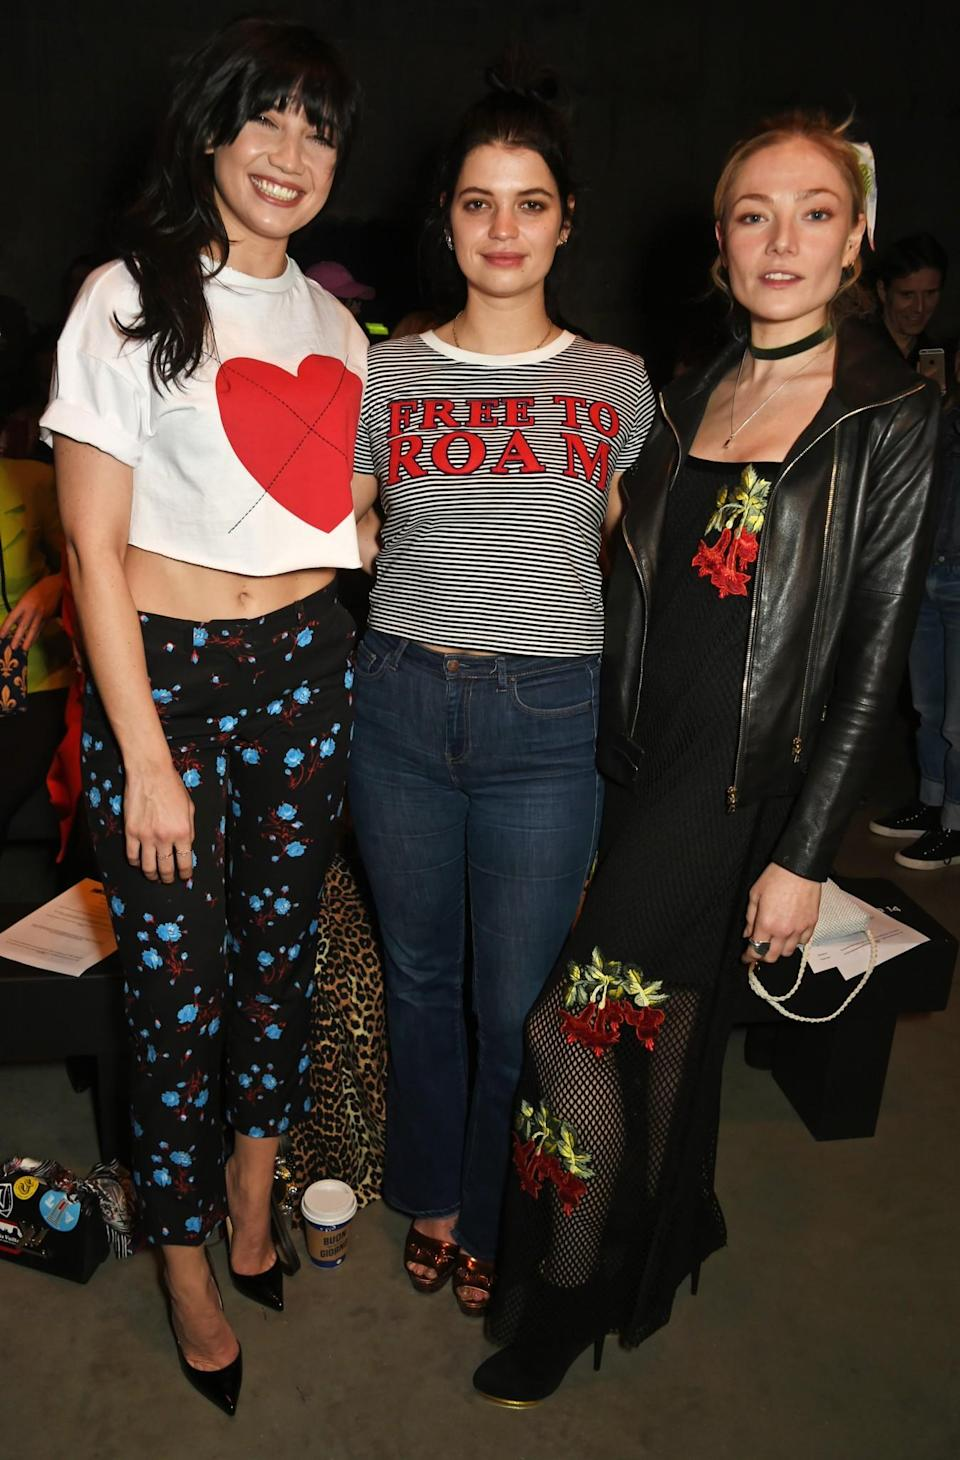 <p>Daisy Lowe, Pixie Geldof and Clara Paget all turned out to support their friend. <i>[Photo: Getty]</i> </p>